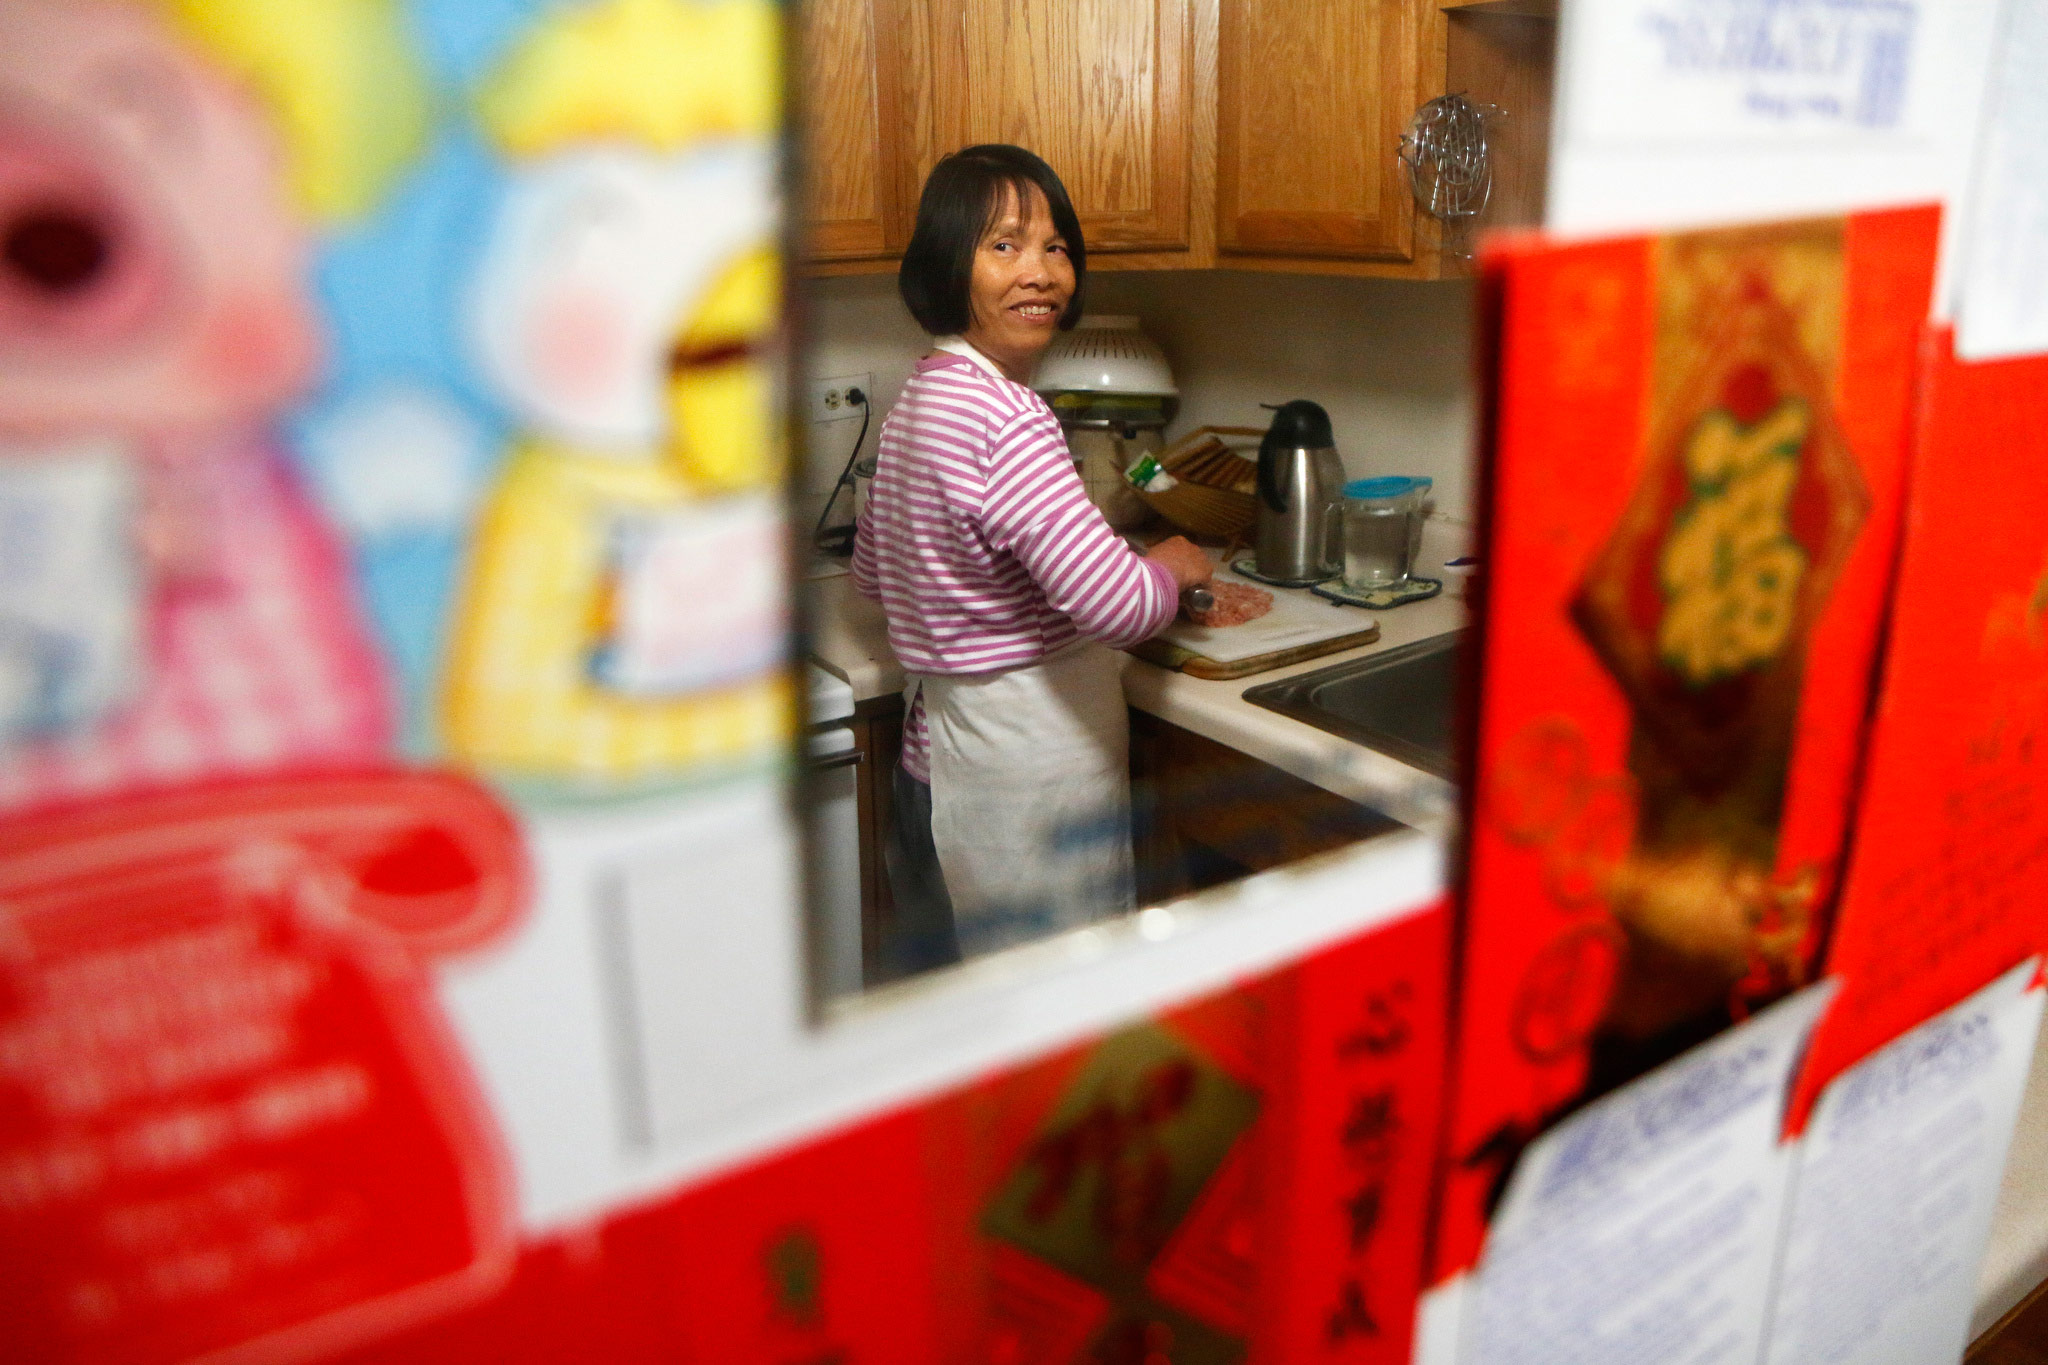 Cuihuan Yu A Home Assistant Cooks For Her Client 78 Year Old Tai Khuai Wah At S Apartment In Chicago Chinatown On May 10 2017